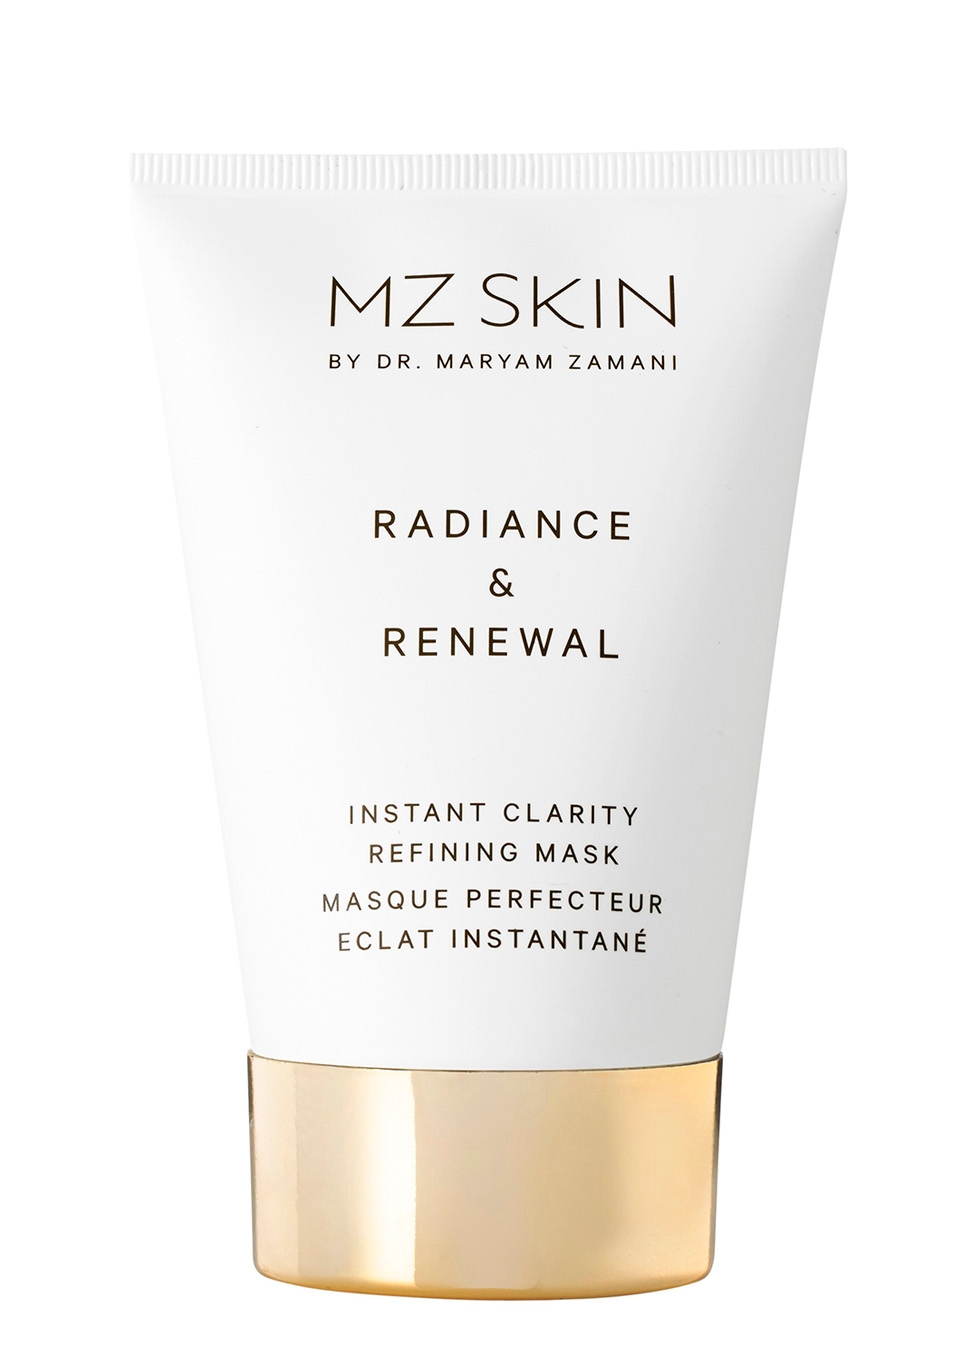 Radiance & Renewal Instant Clarity Refining Mask 100ml